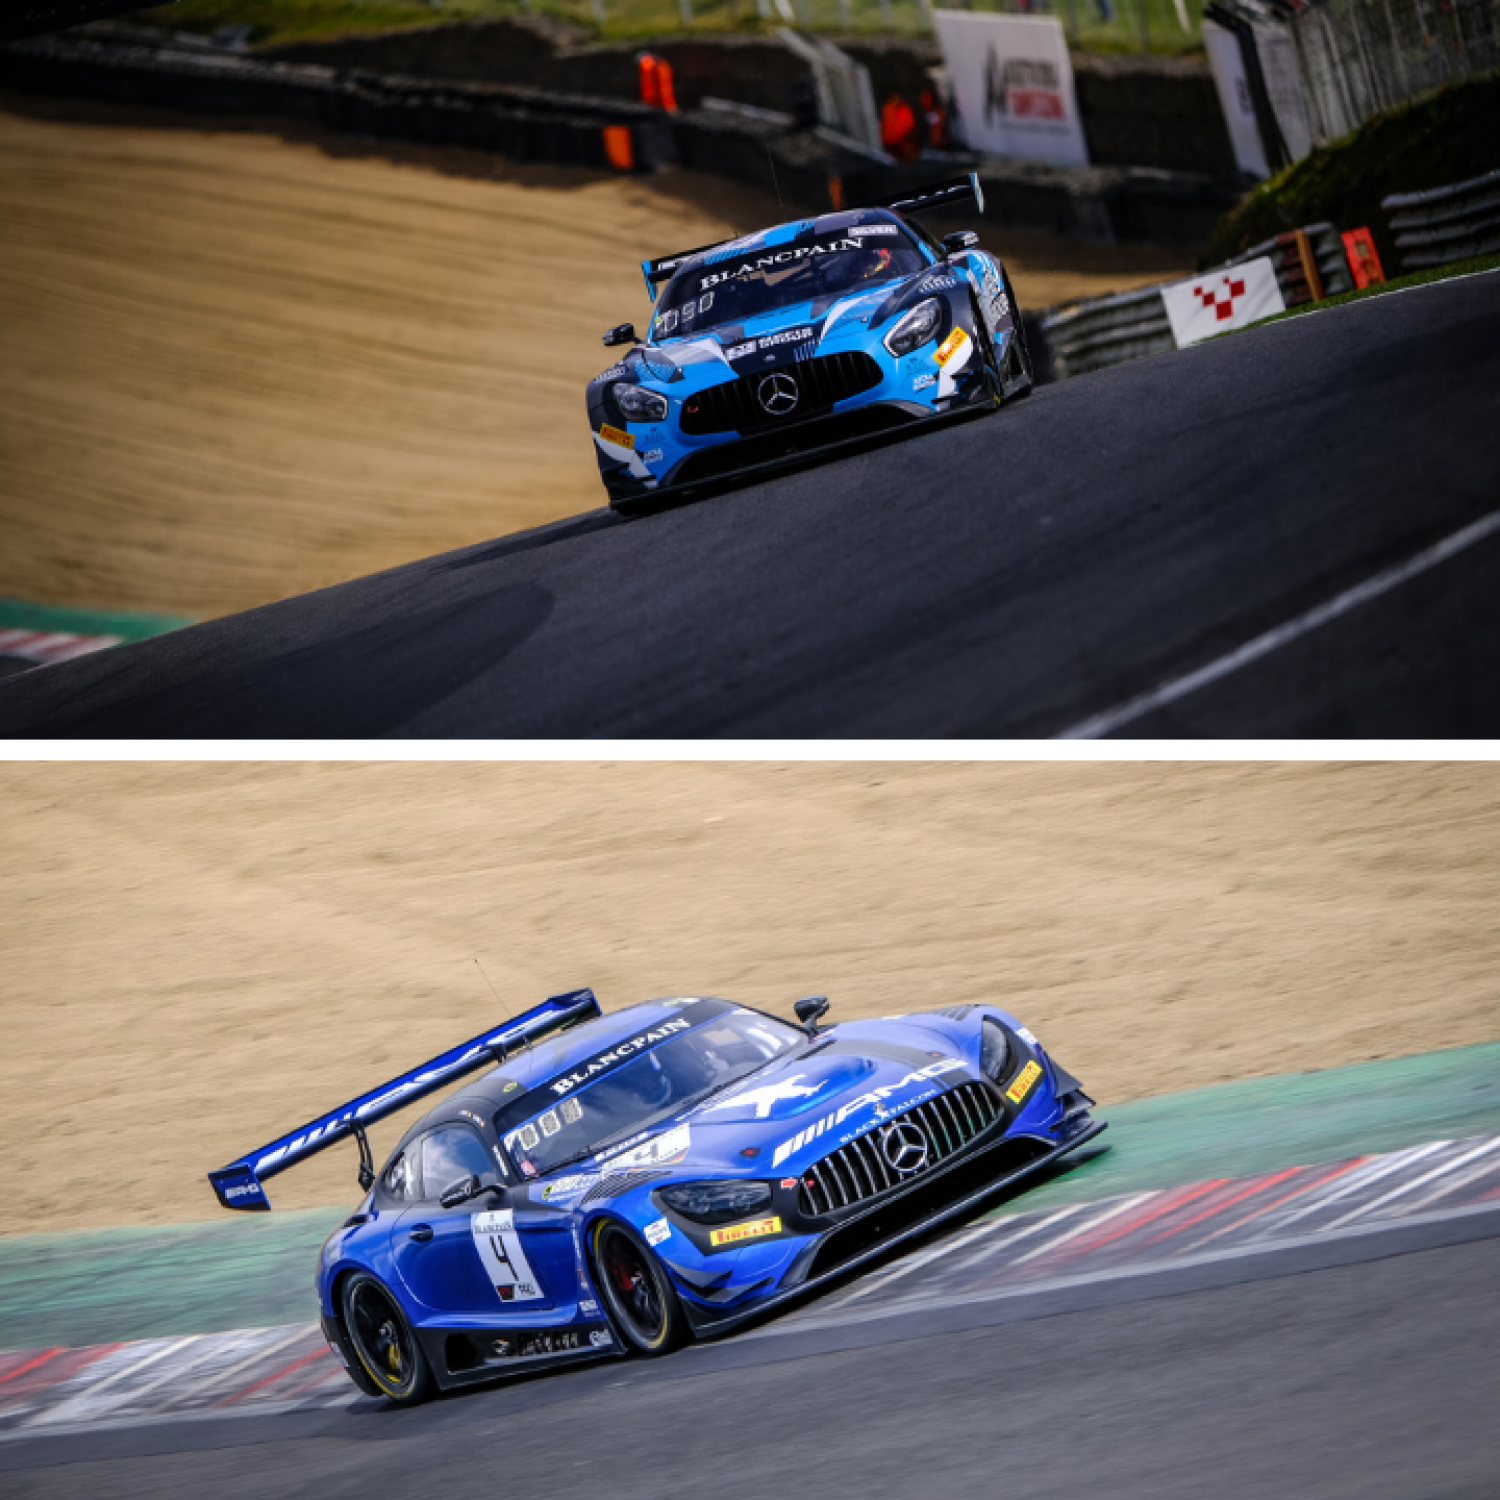 Black Falcon and AKKA ASP secure Mercedes-AMG pole position sweep in dramatic Brands Hatch qualifying